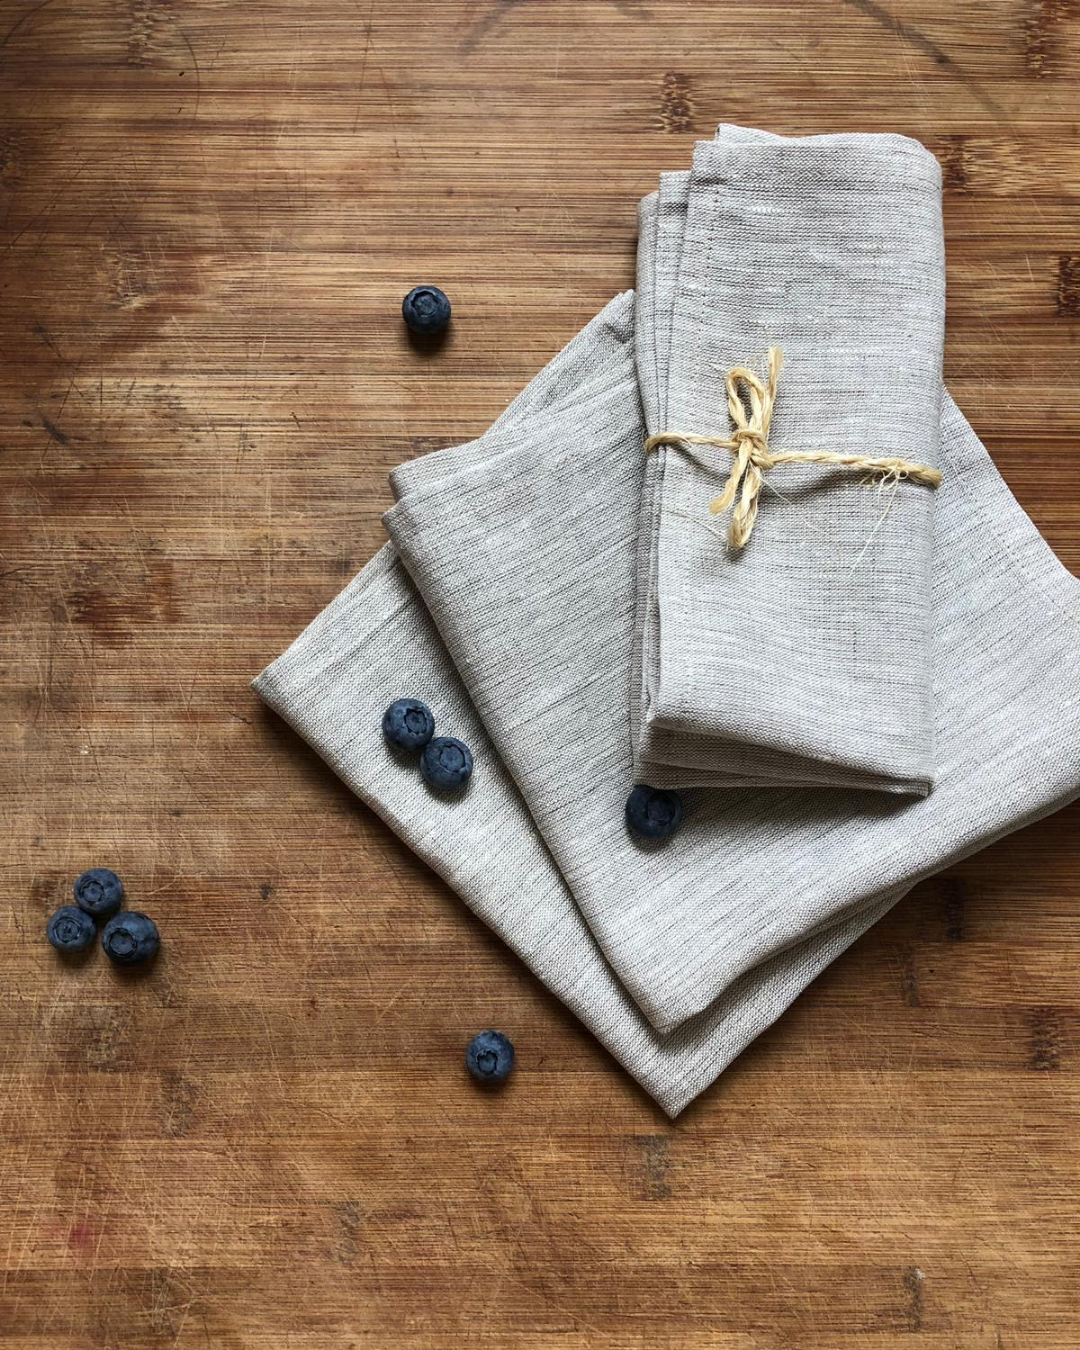 Linen napkin from natural flax colour